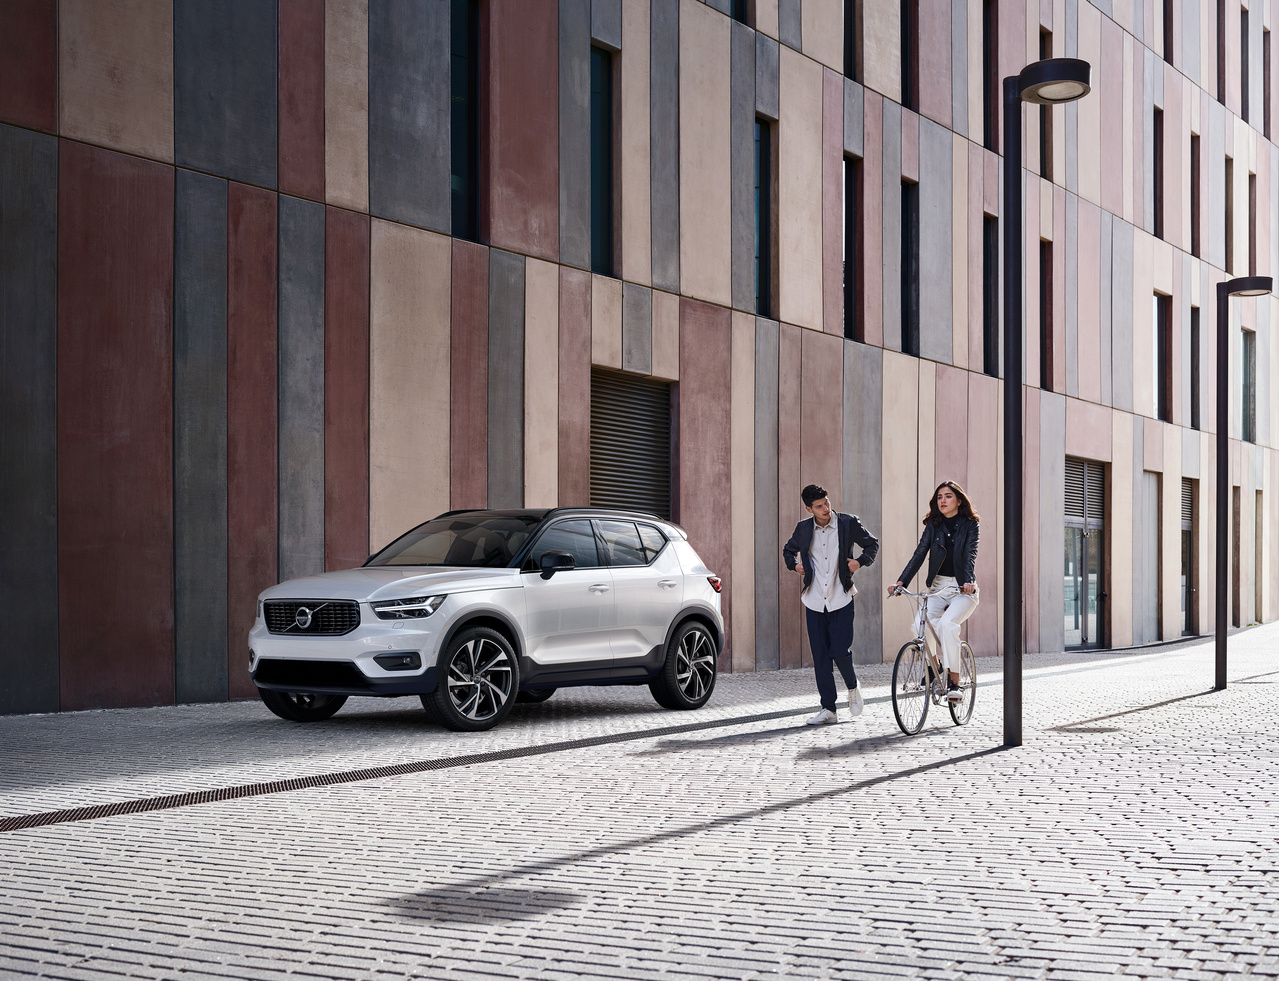 2019 Volvo XC40 at Kempthorn Volvo Cars